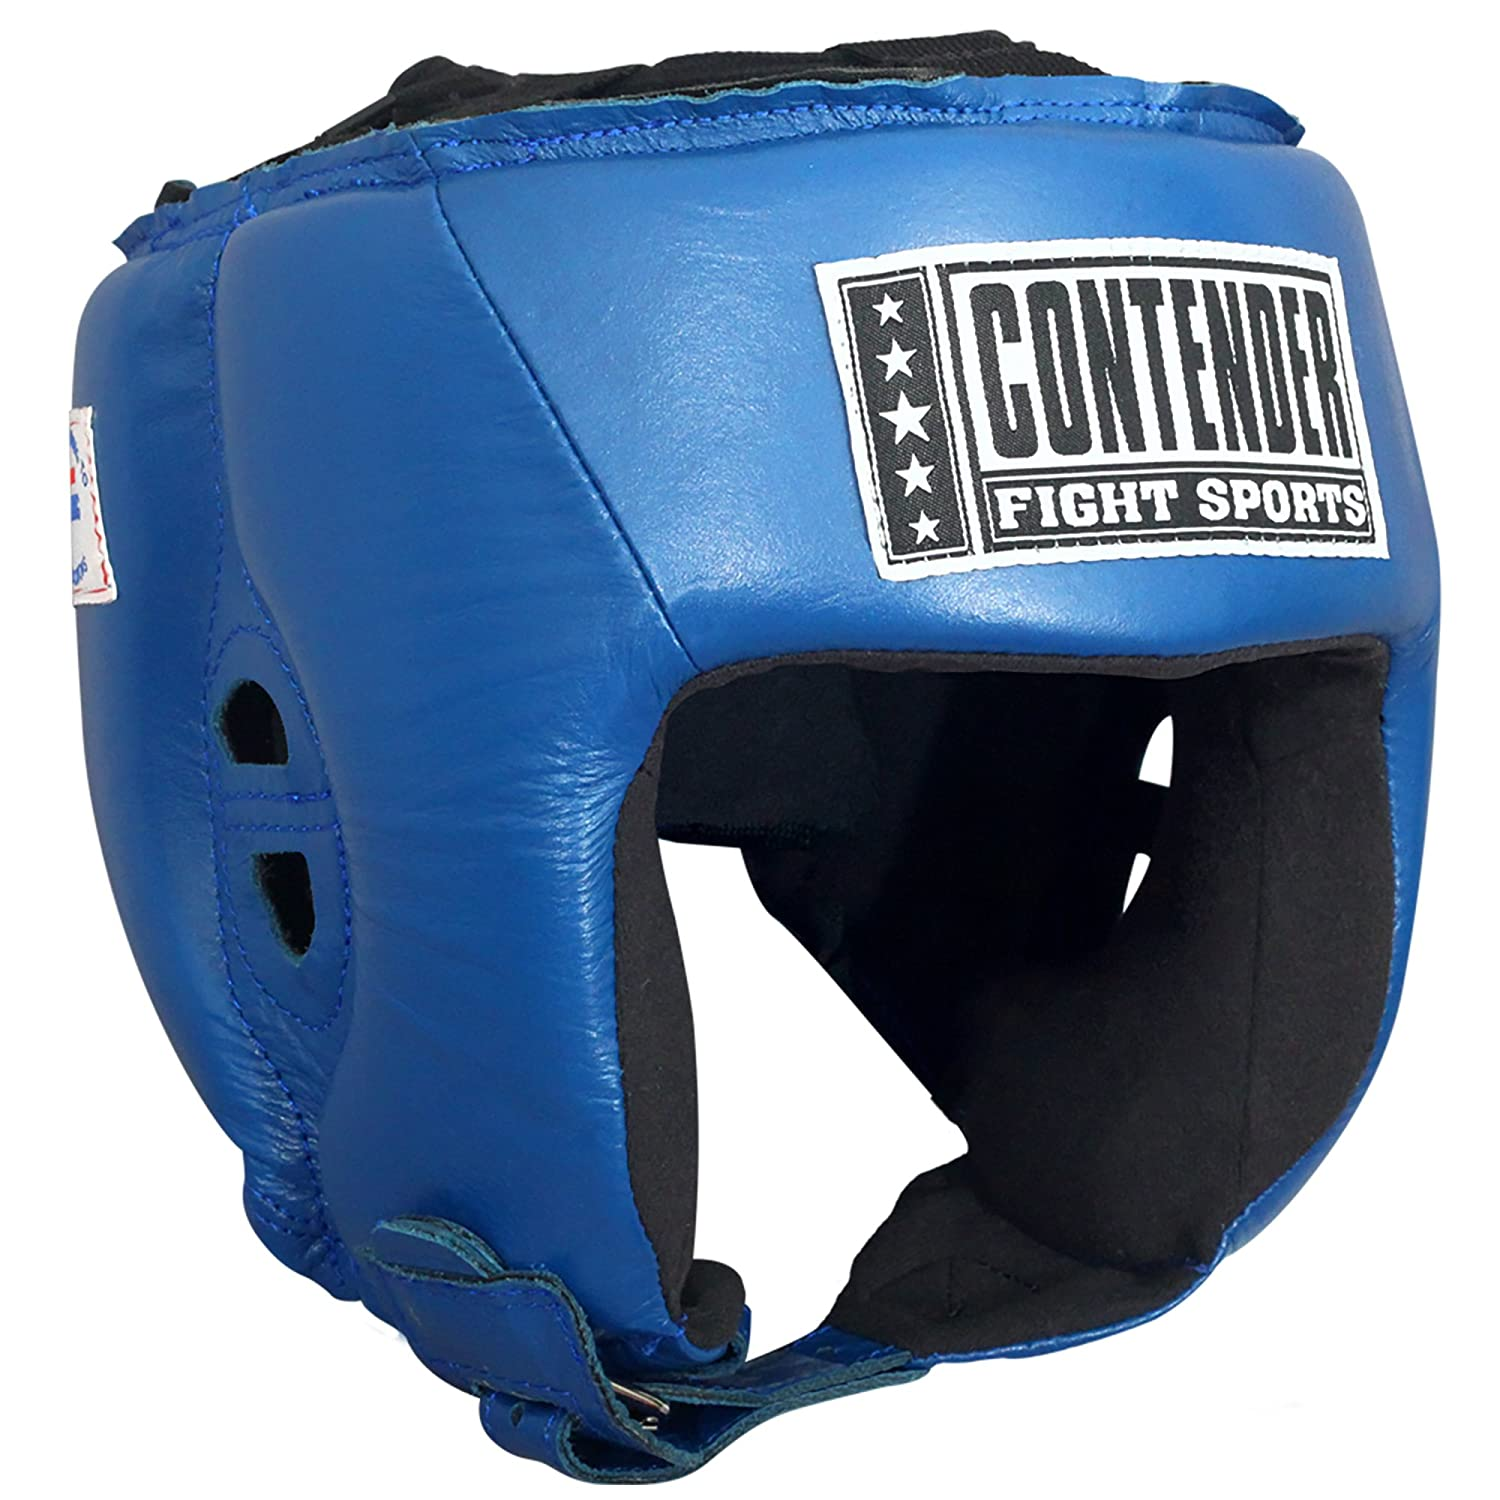 Contender Fight Sports CompetitionボクシングムエタイMMAスパーリングヘッド保護Headgear without Cheeks Small ブルー B00YU1P0Y6